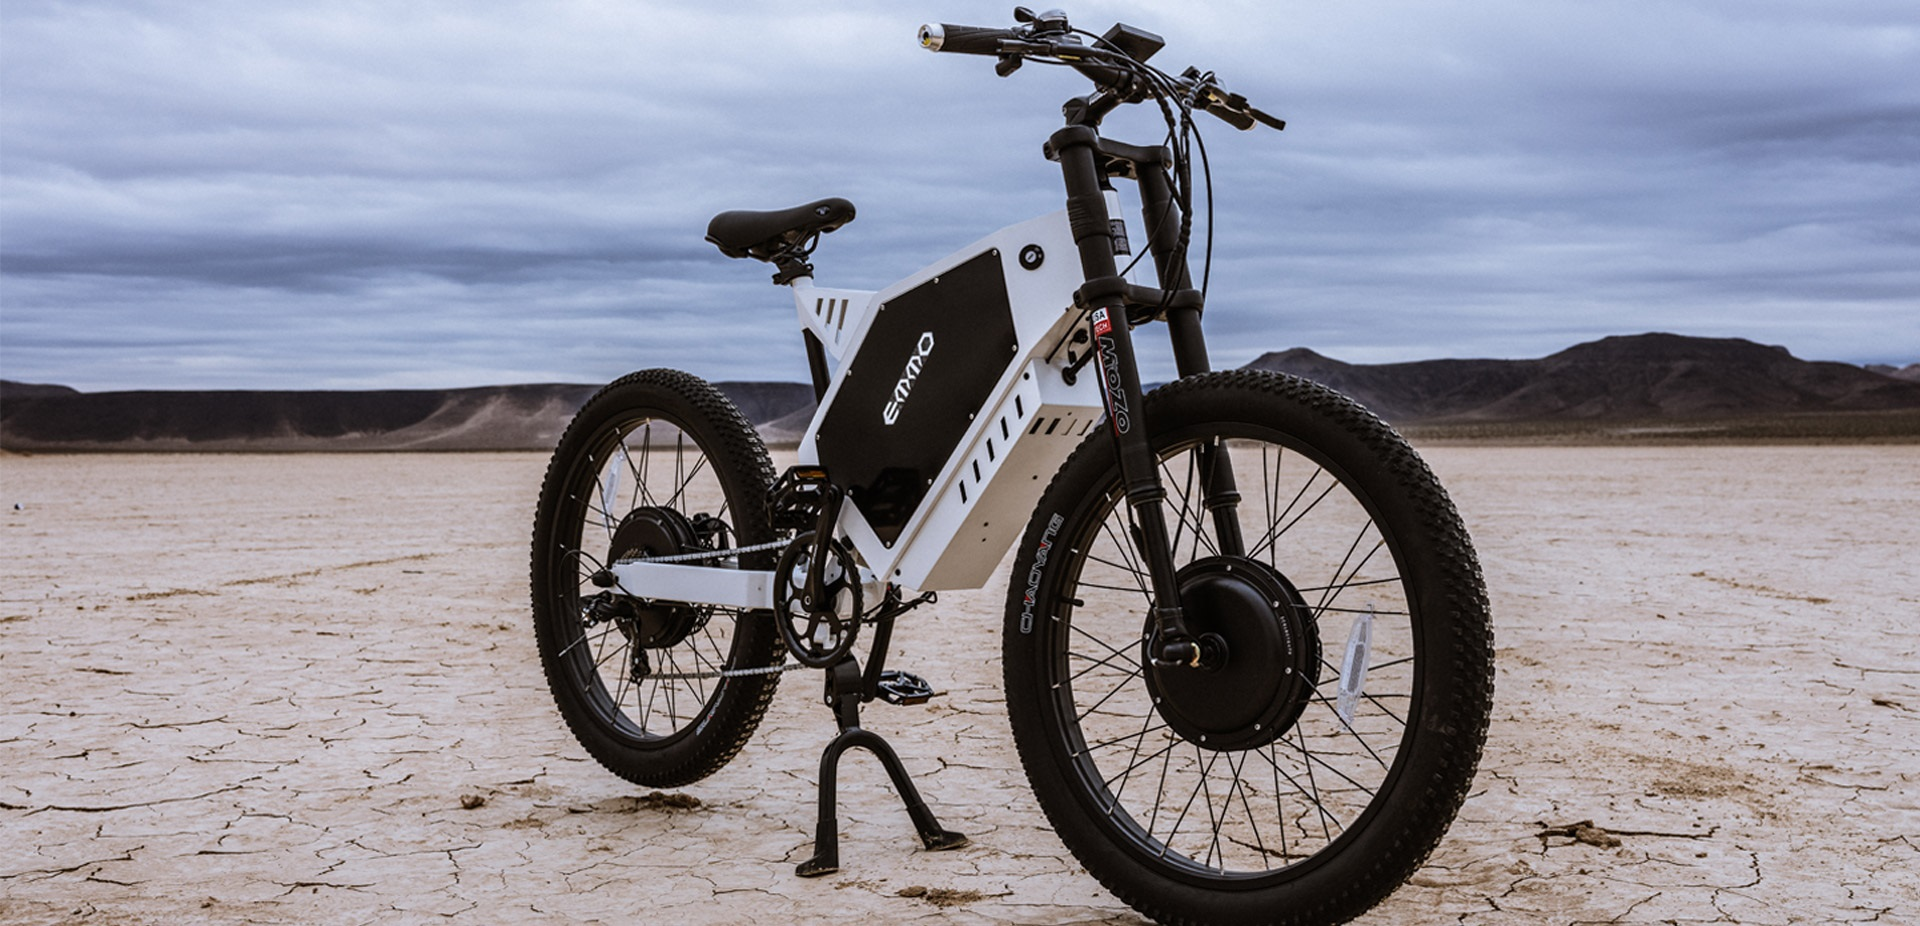 Emmo Canada: Ebikes, Electric Bicycles, Electric Motorcycles and